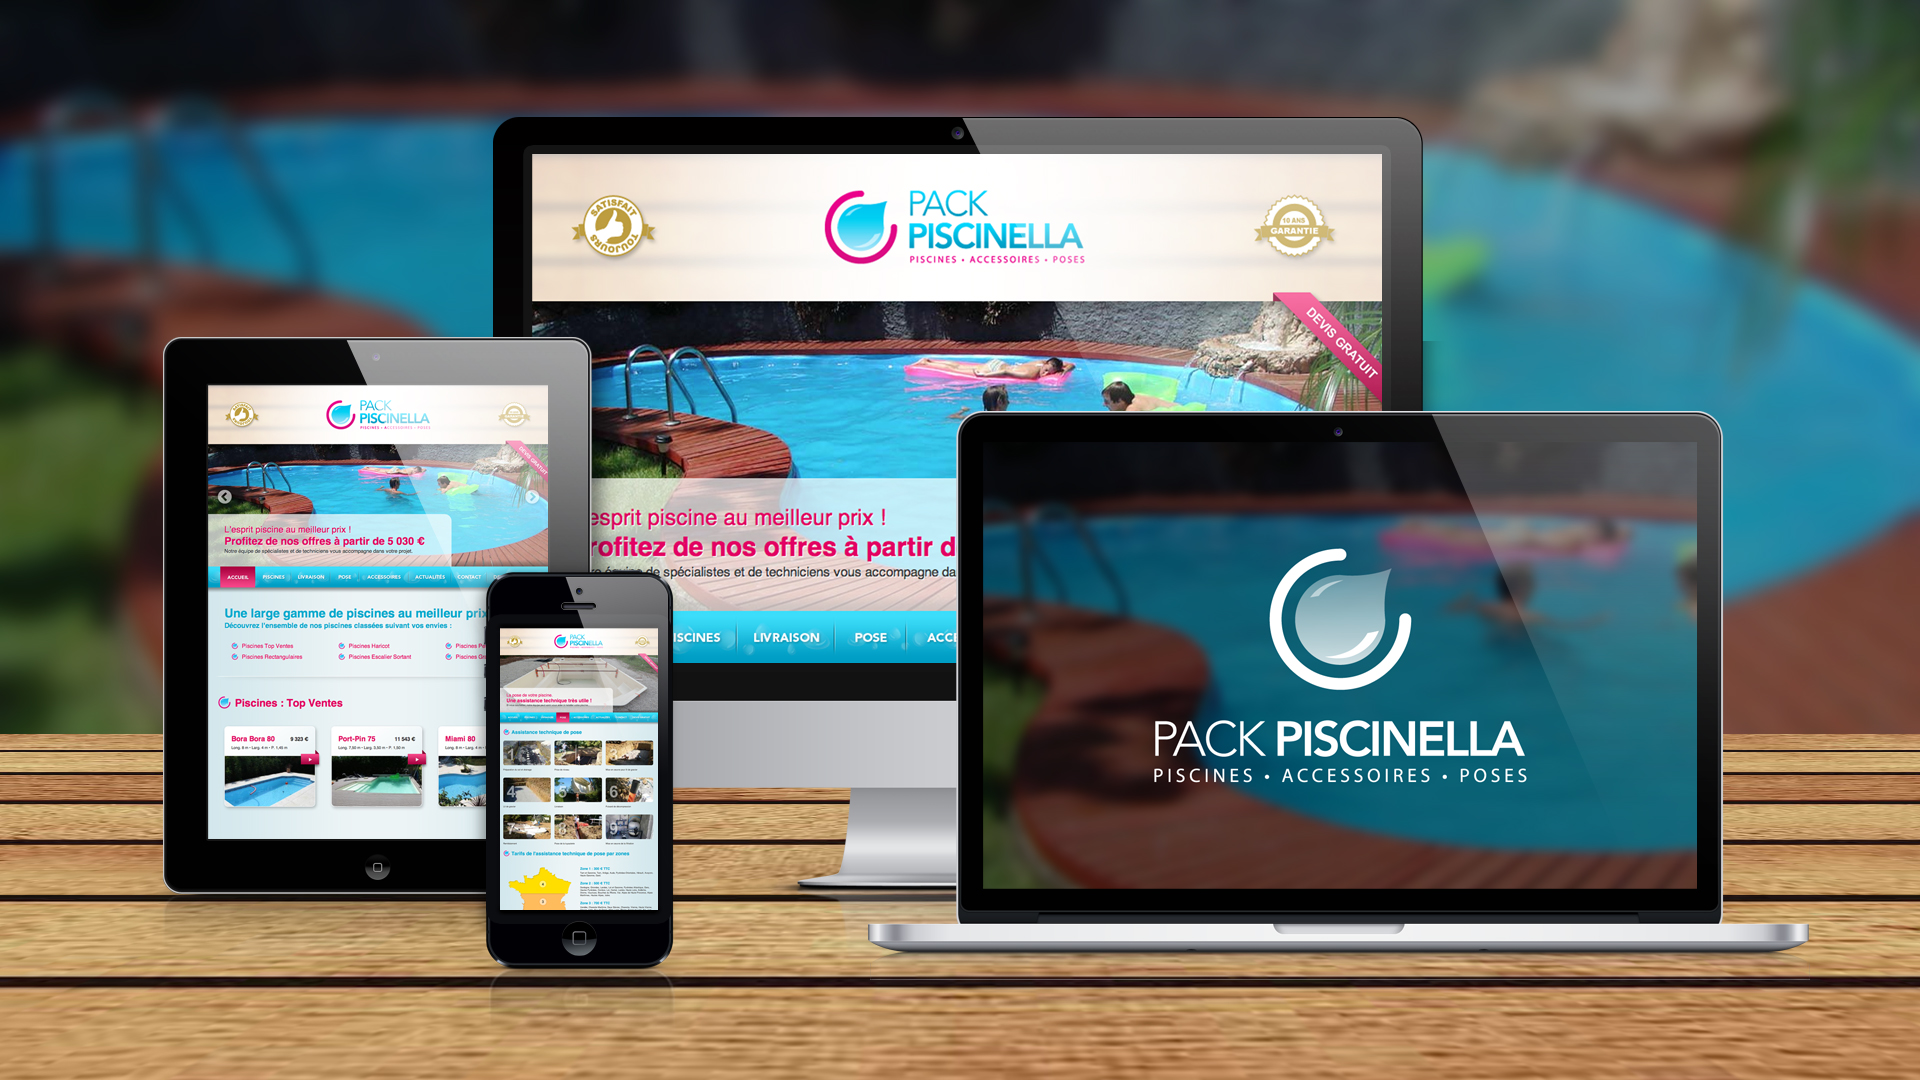 pack-piscinella-creation-logo-site-internet-communication-caconcept-alexis-cretin-graphiste